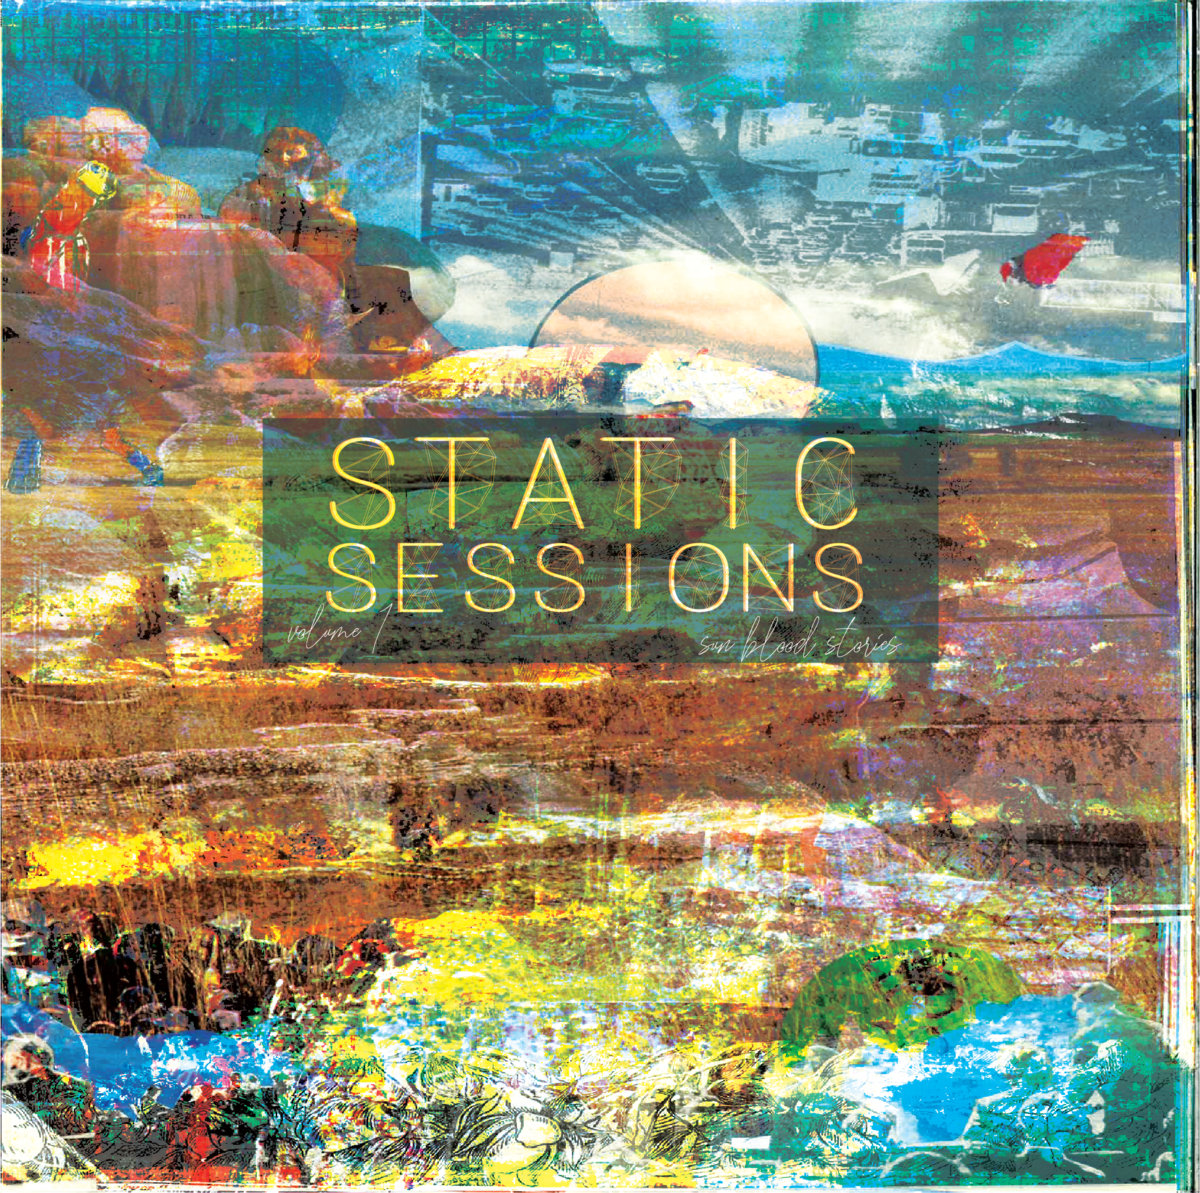 sun blood stories static sessions